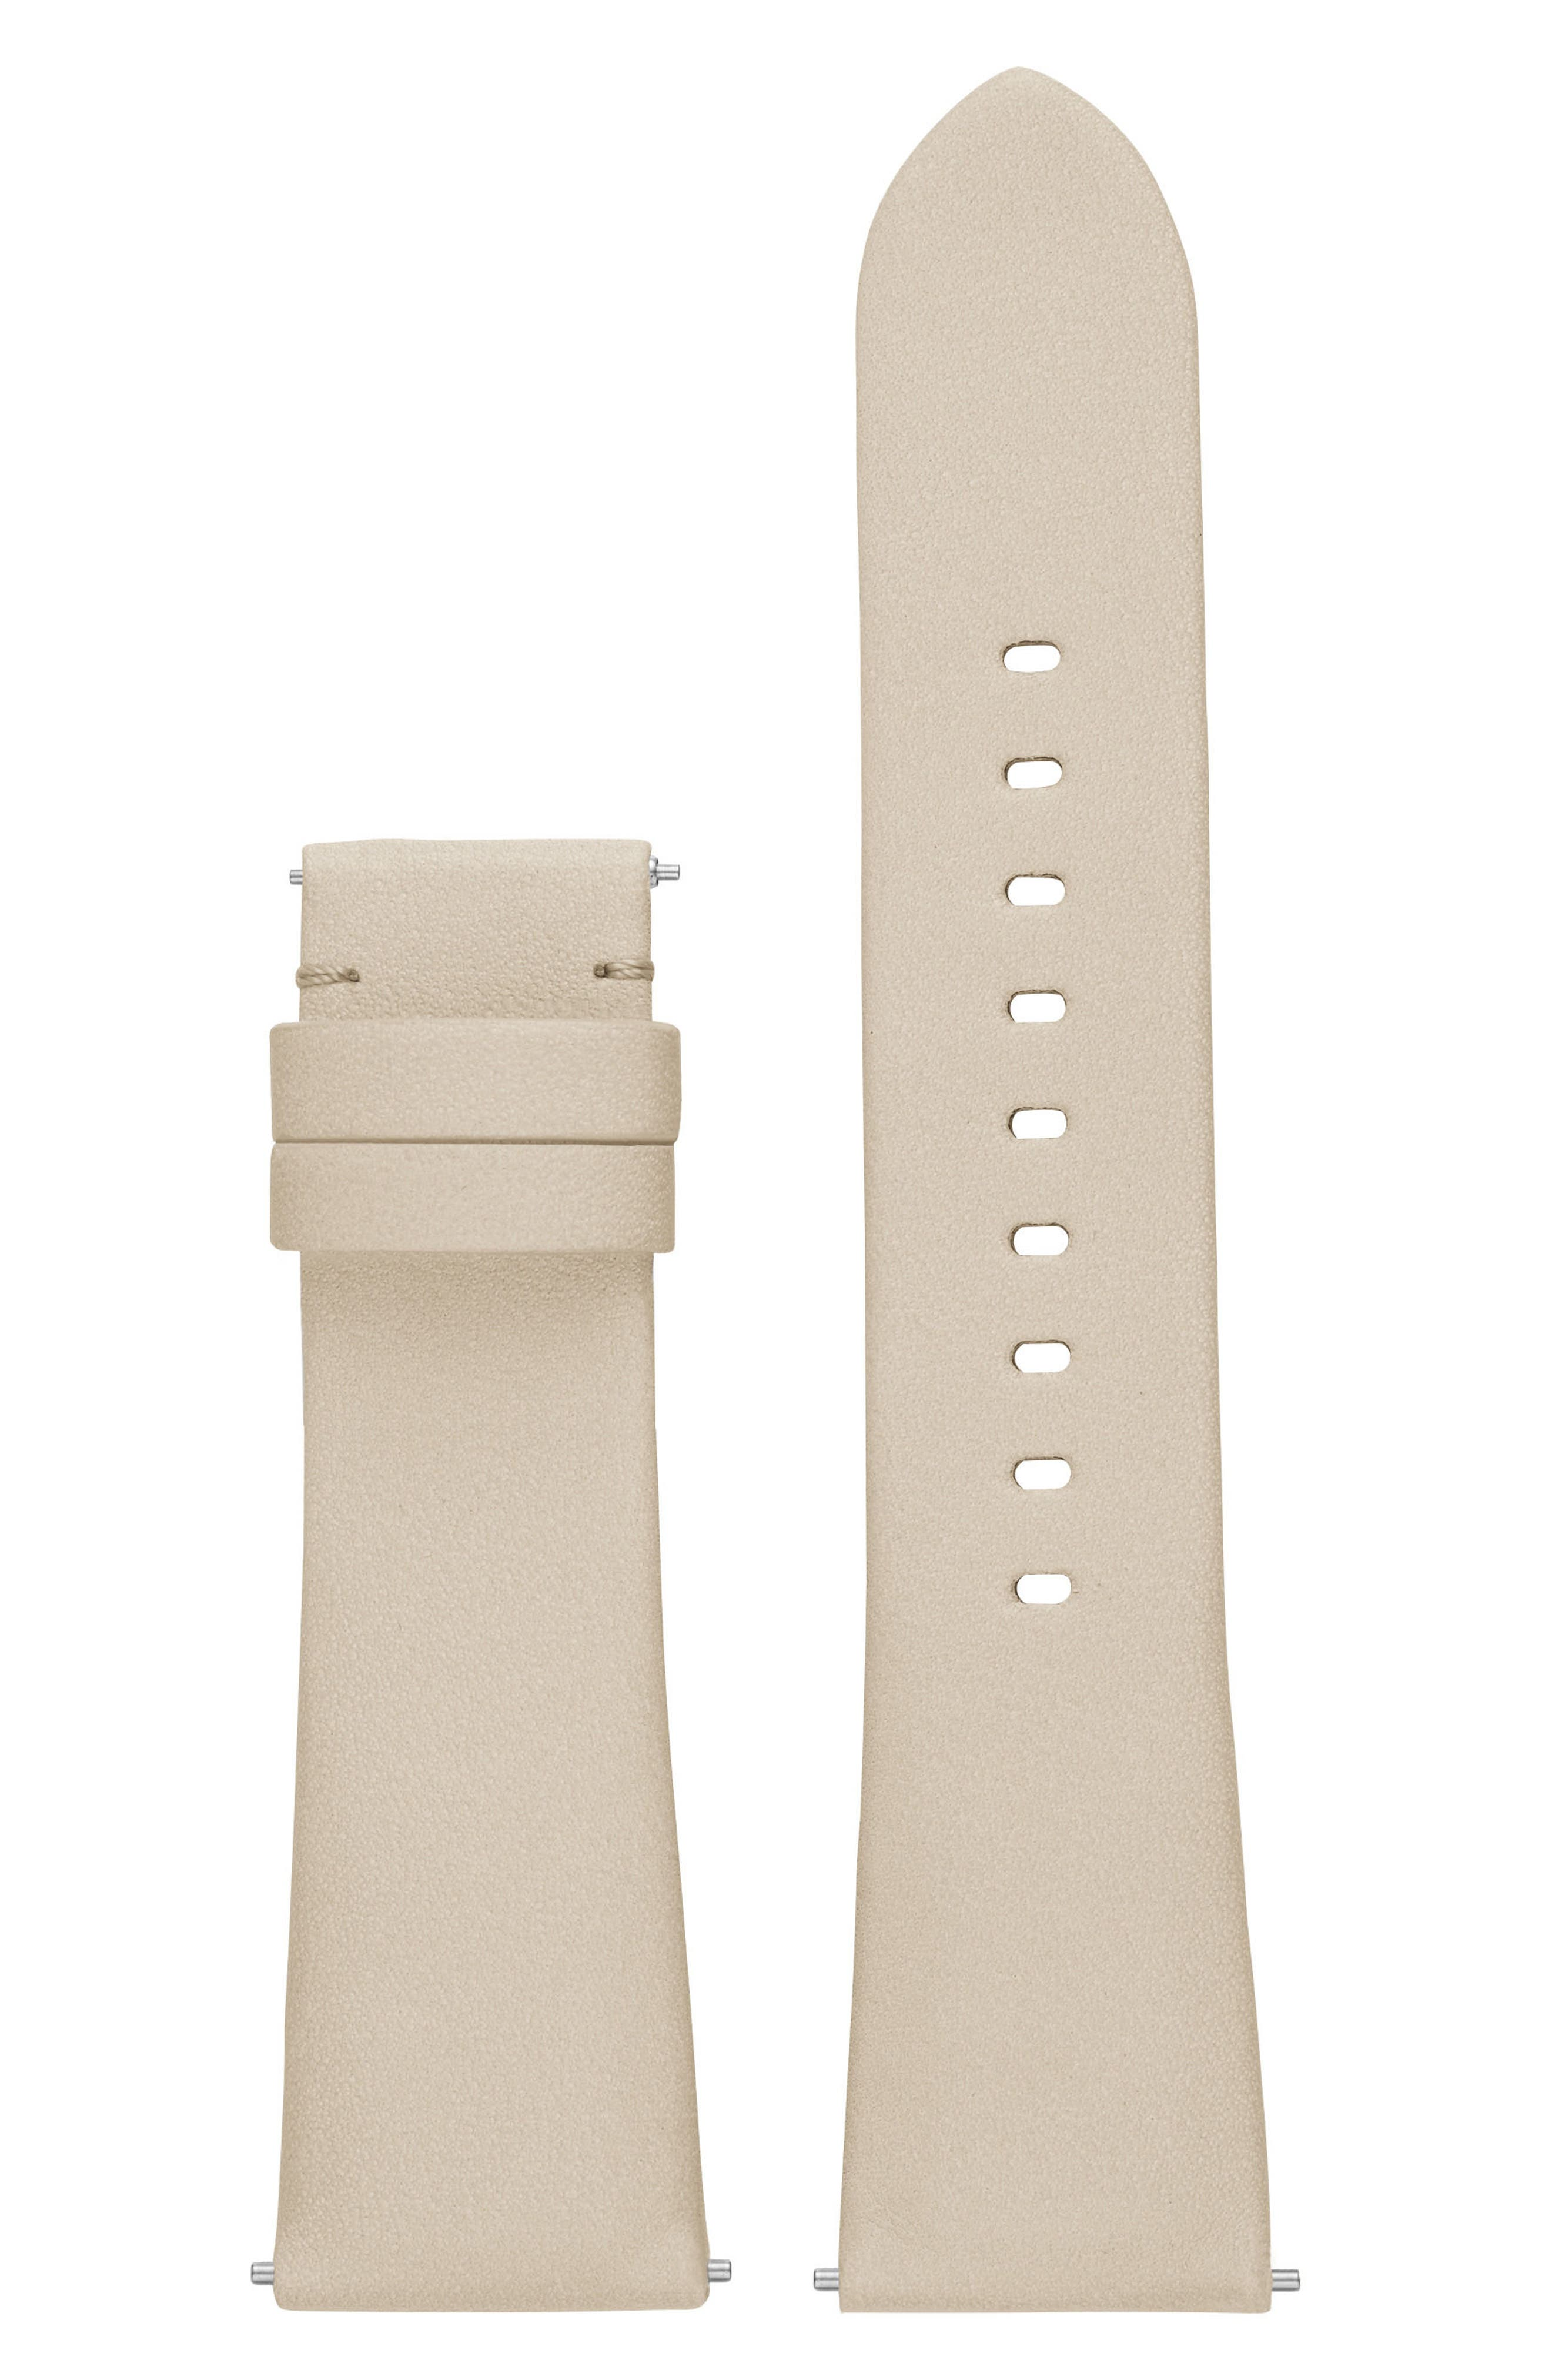 Main Image - Michael Kors Access Bradshaw 22mm Leather Watch Strap